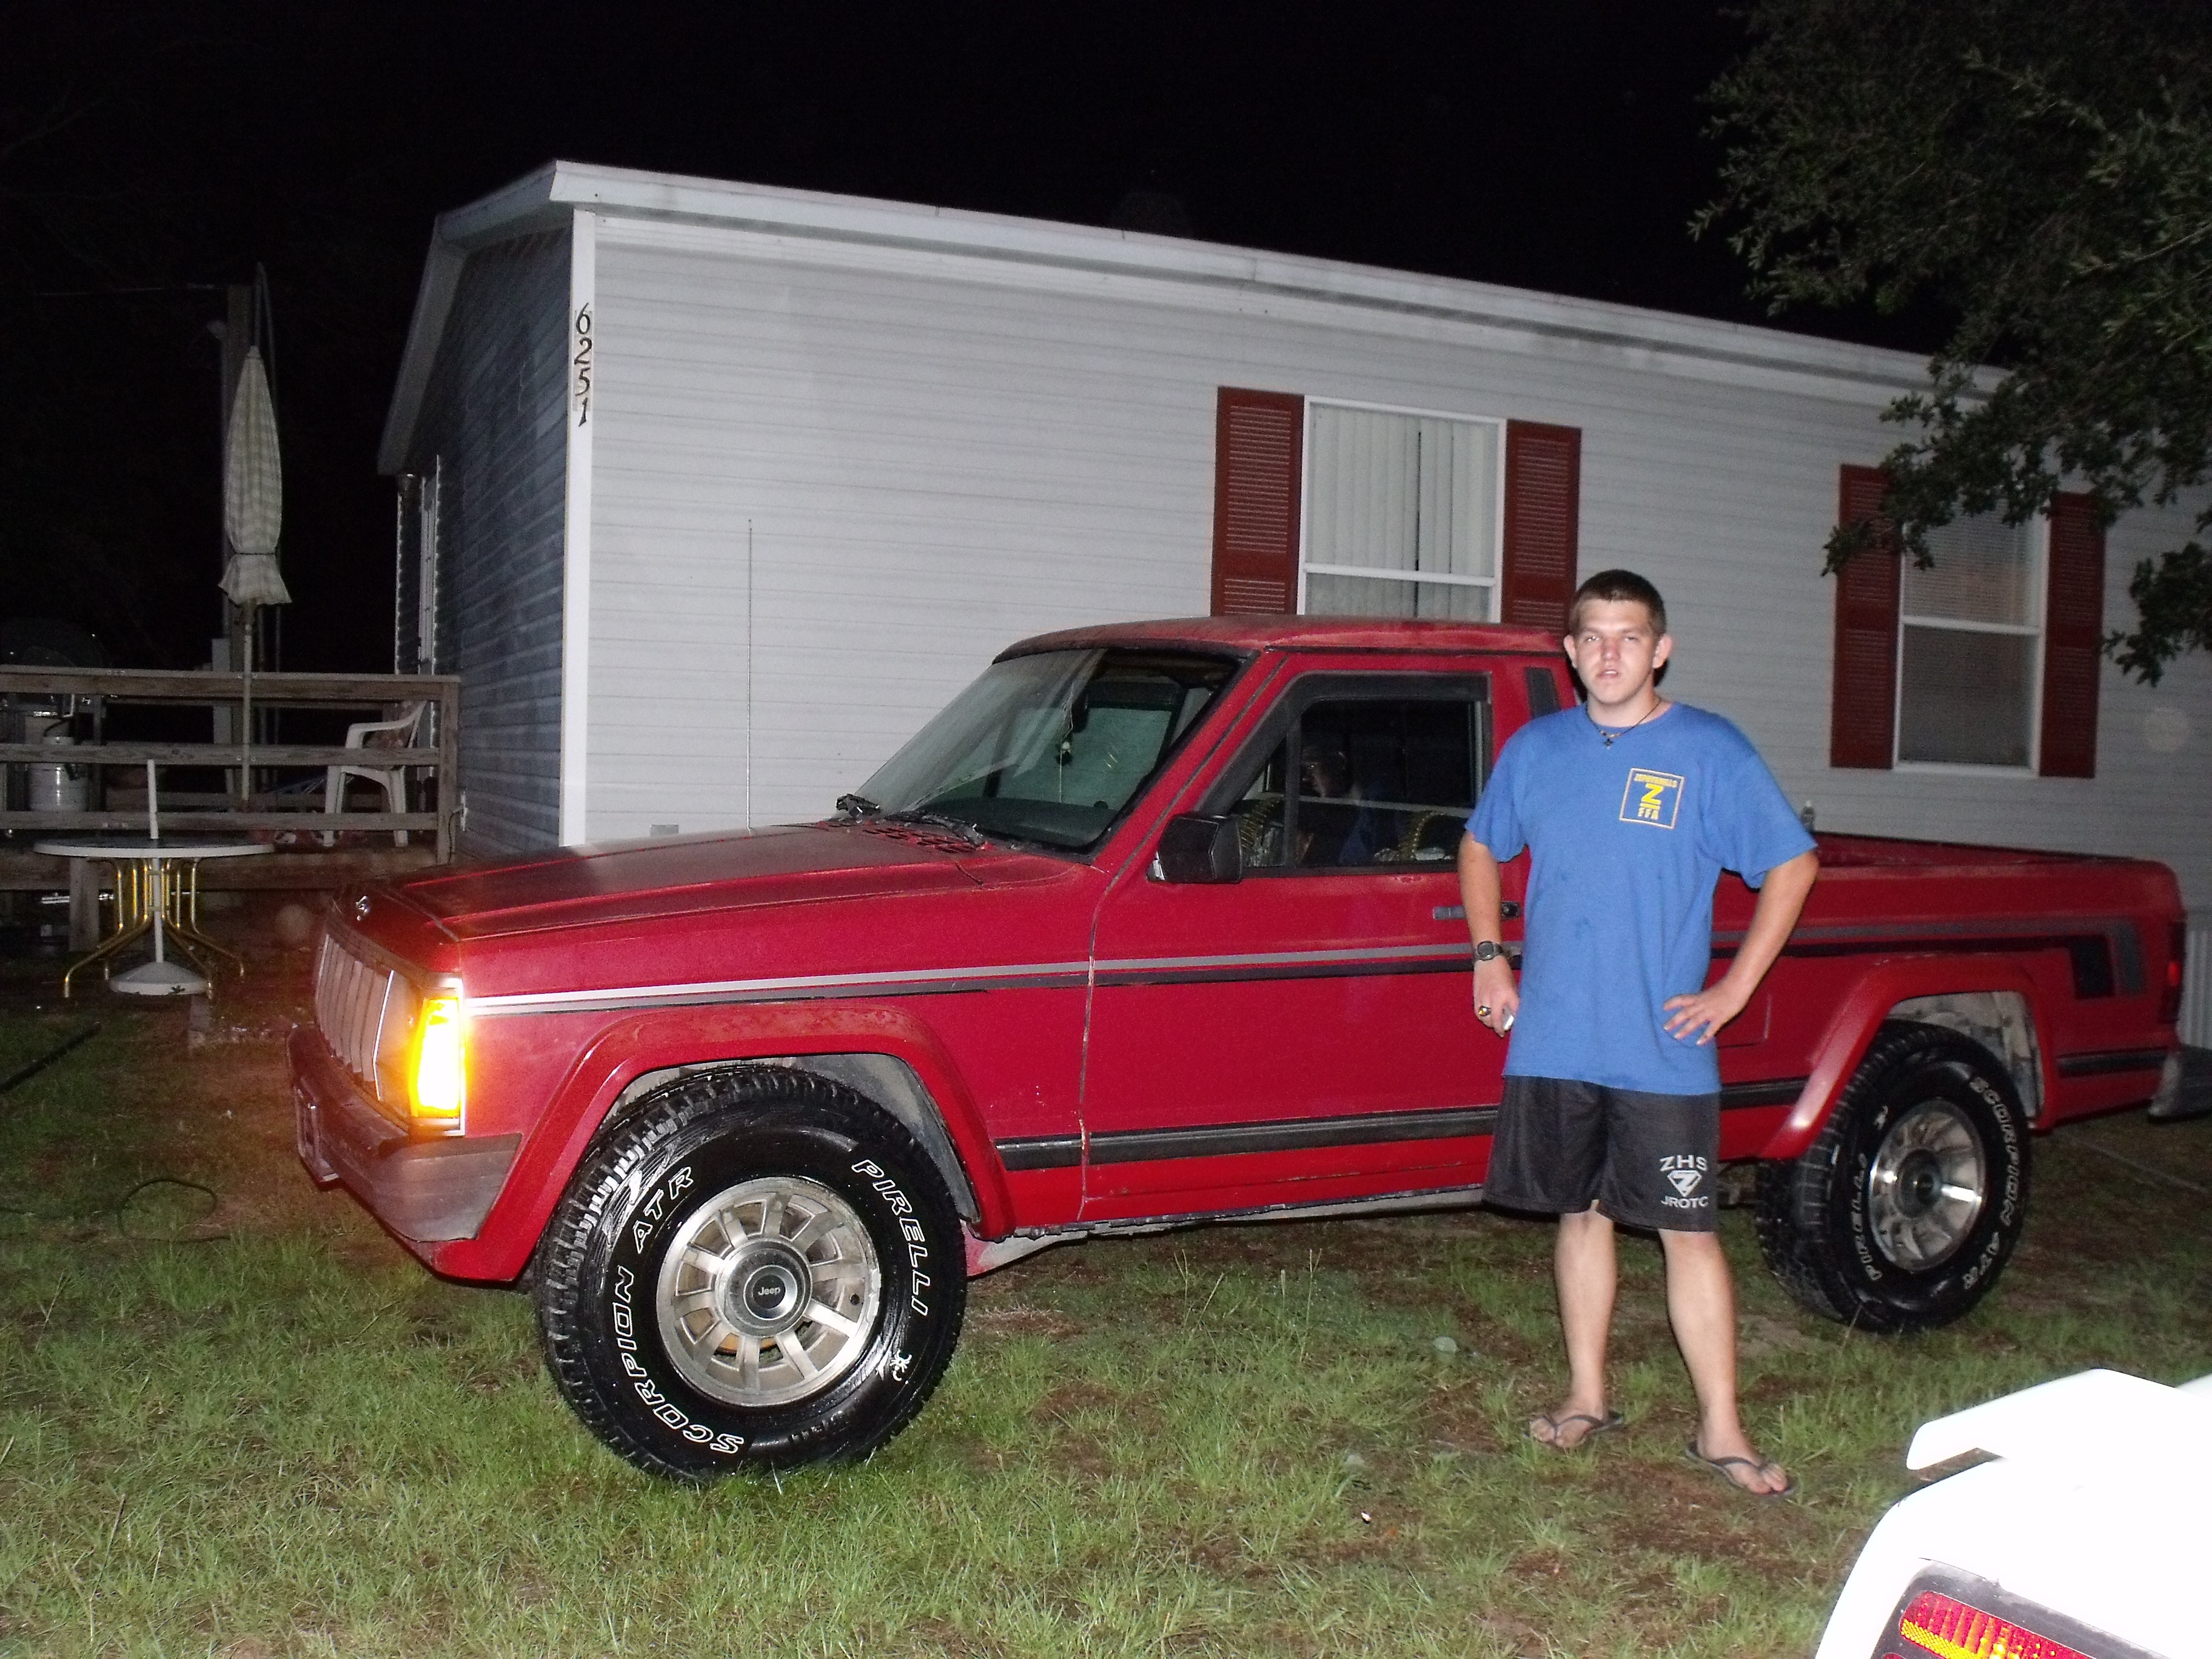 Btm24's 1989 Jeep Comanche Regular Cab